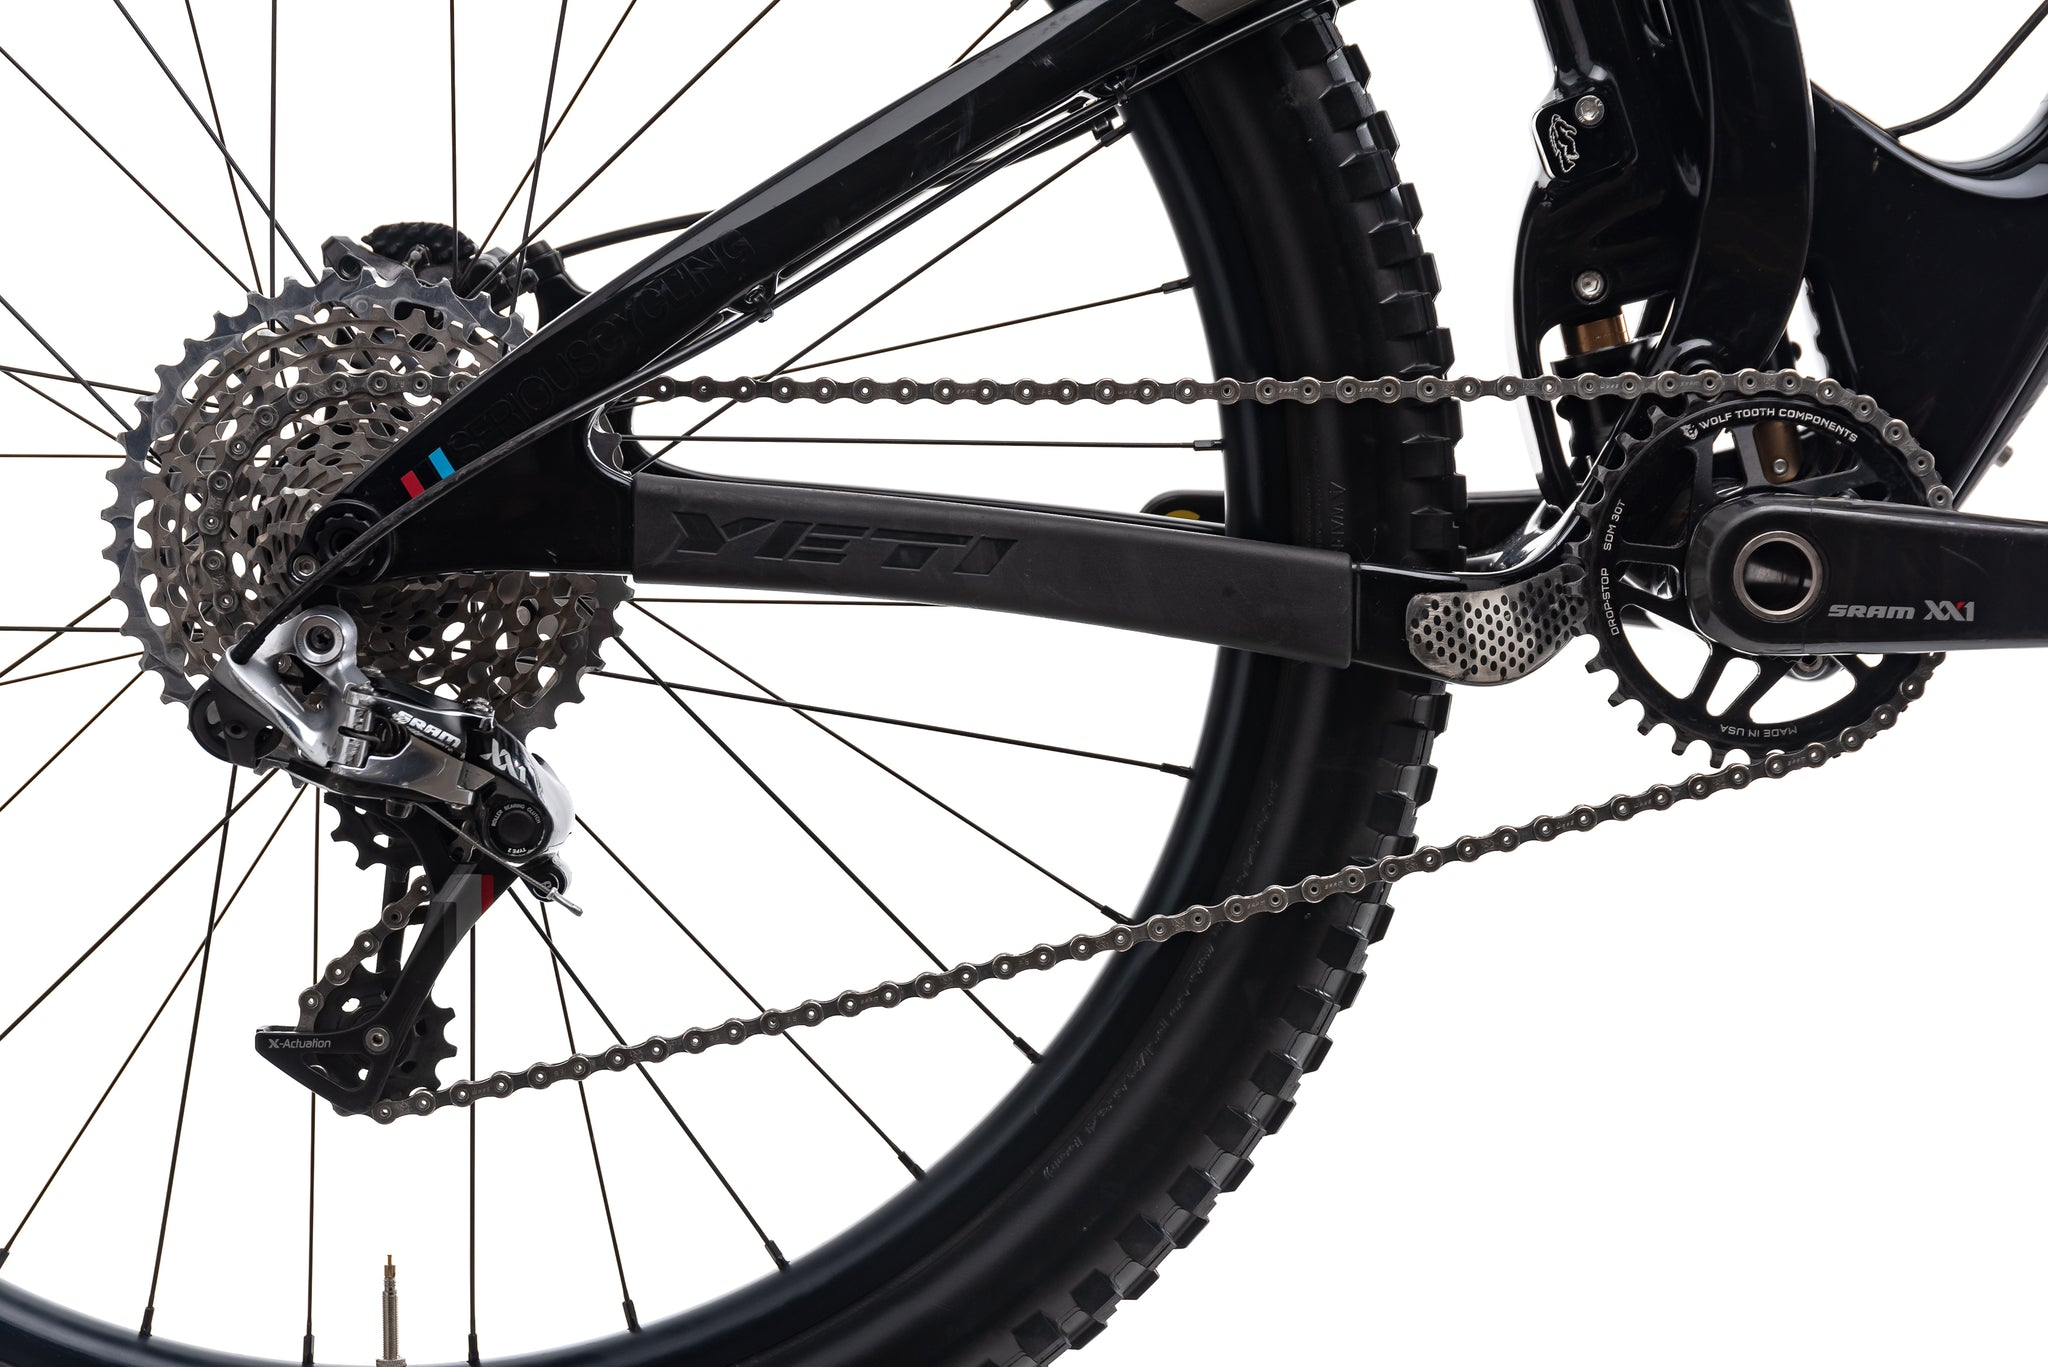 SRAM XX1 1x Mountain Bike drivetrain